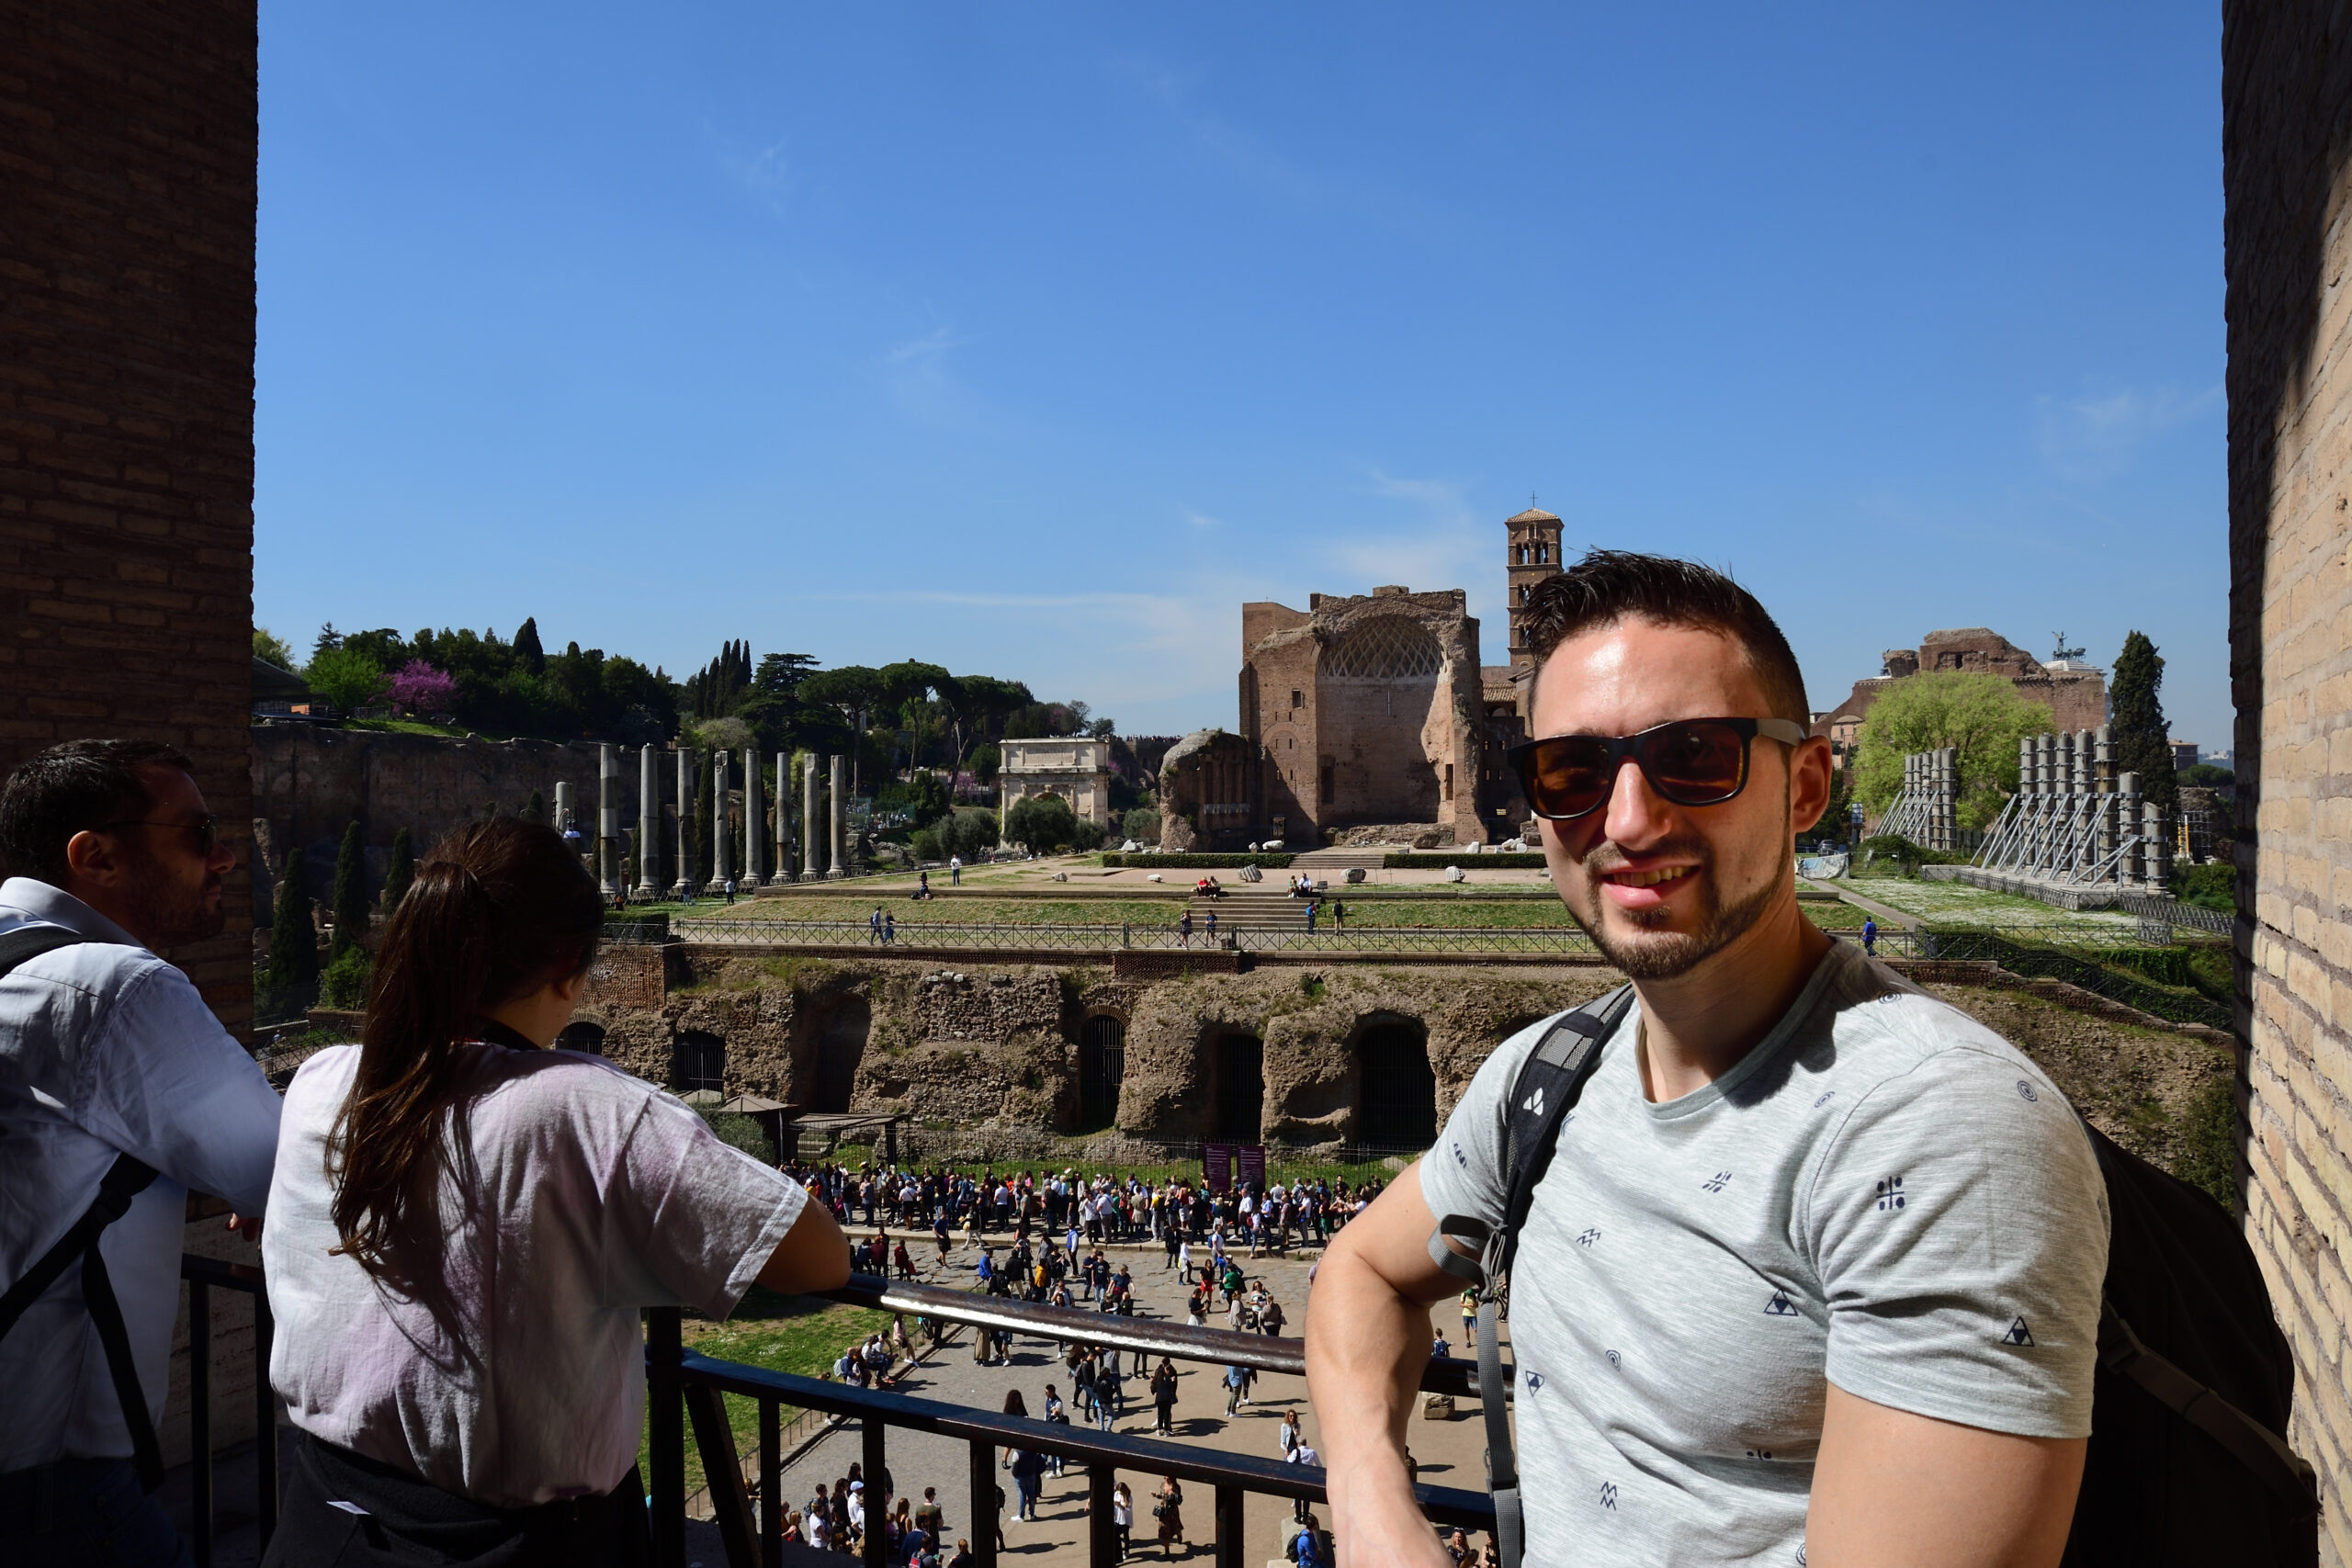 Over-tourism in Rome